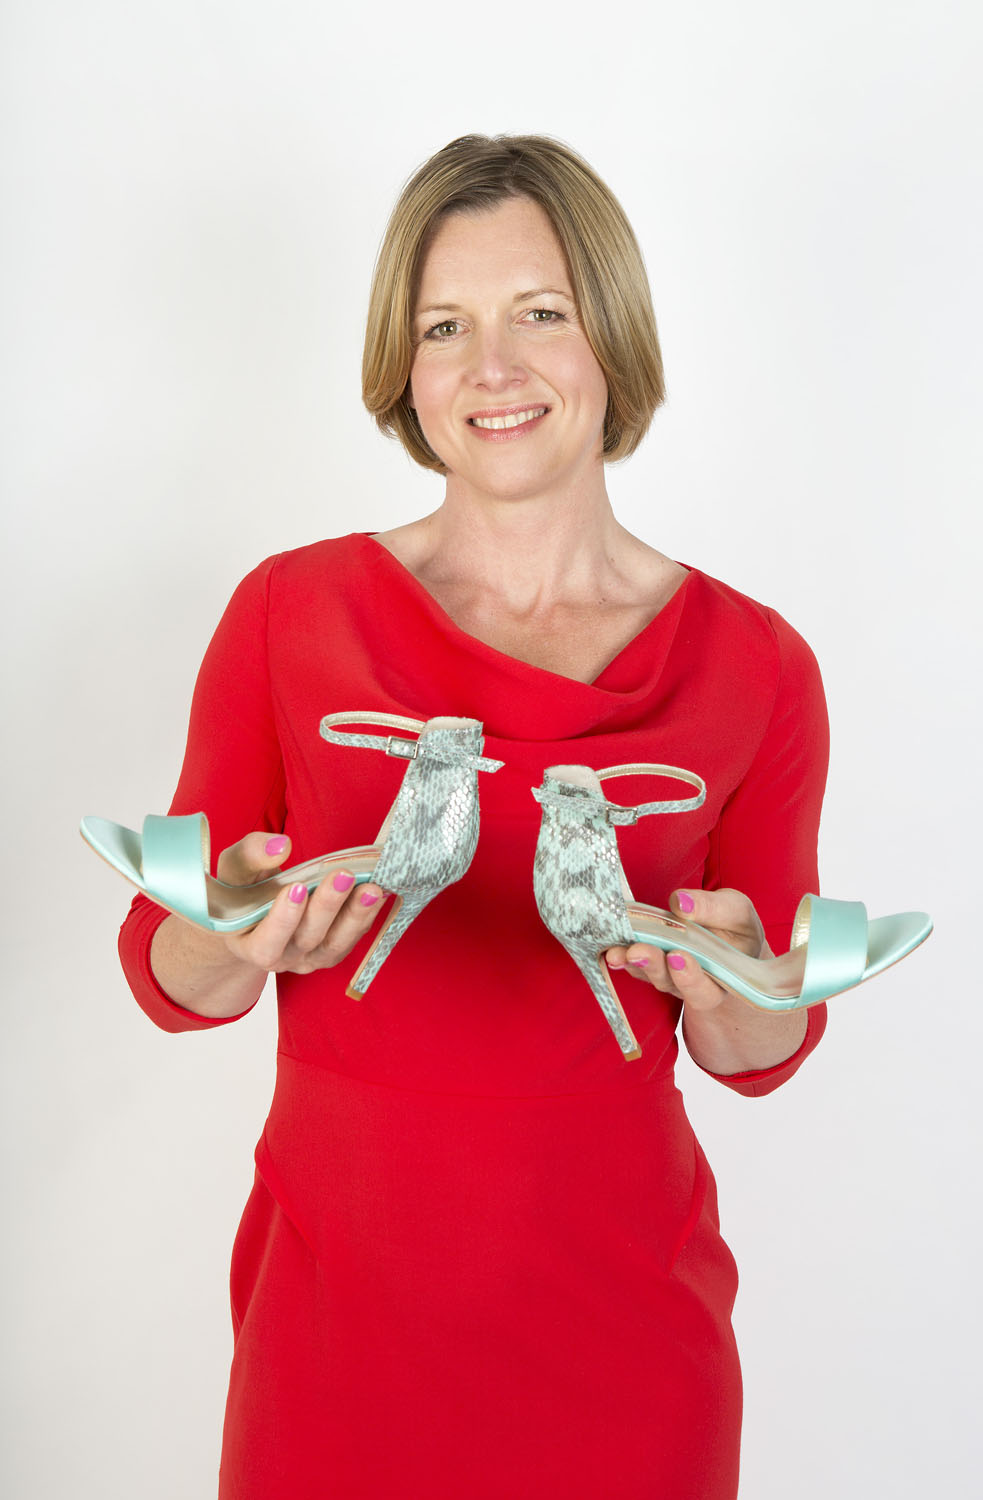 http://www.dailymail.co.uk/femail/article-3146365/How-sister-s-size-nine-feet-helped-make-Julia-millionaire-Meet-mum-brings-magic-touch-selling-designer-shoes.html